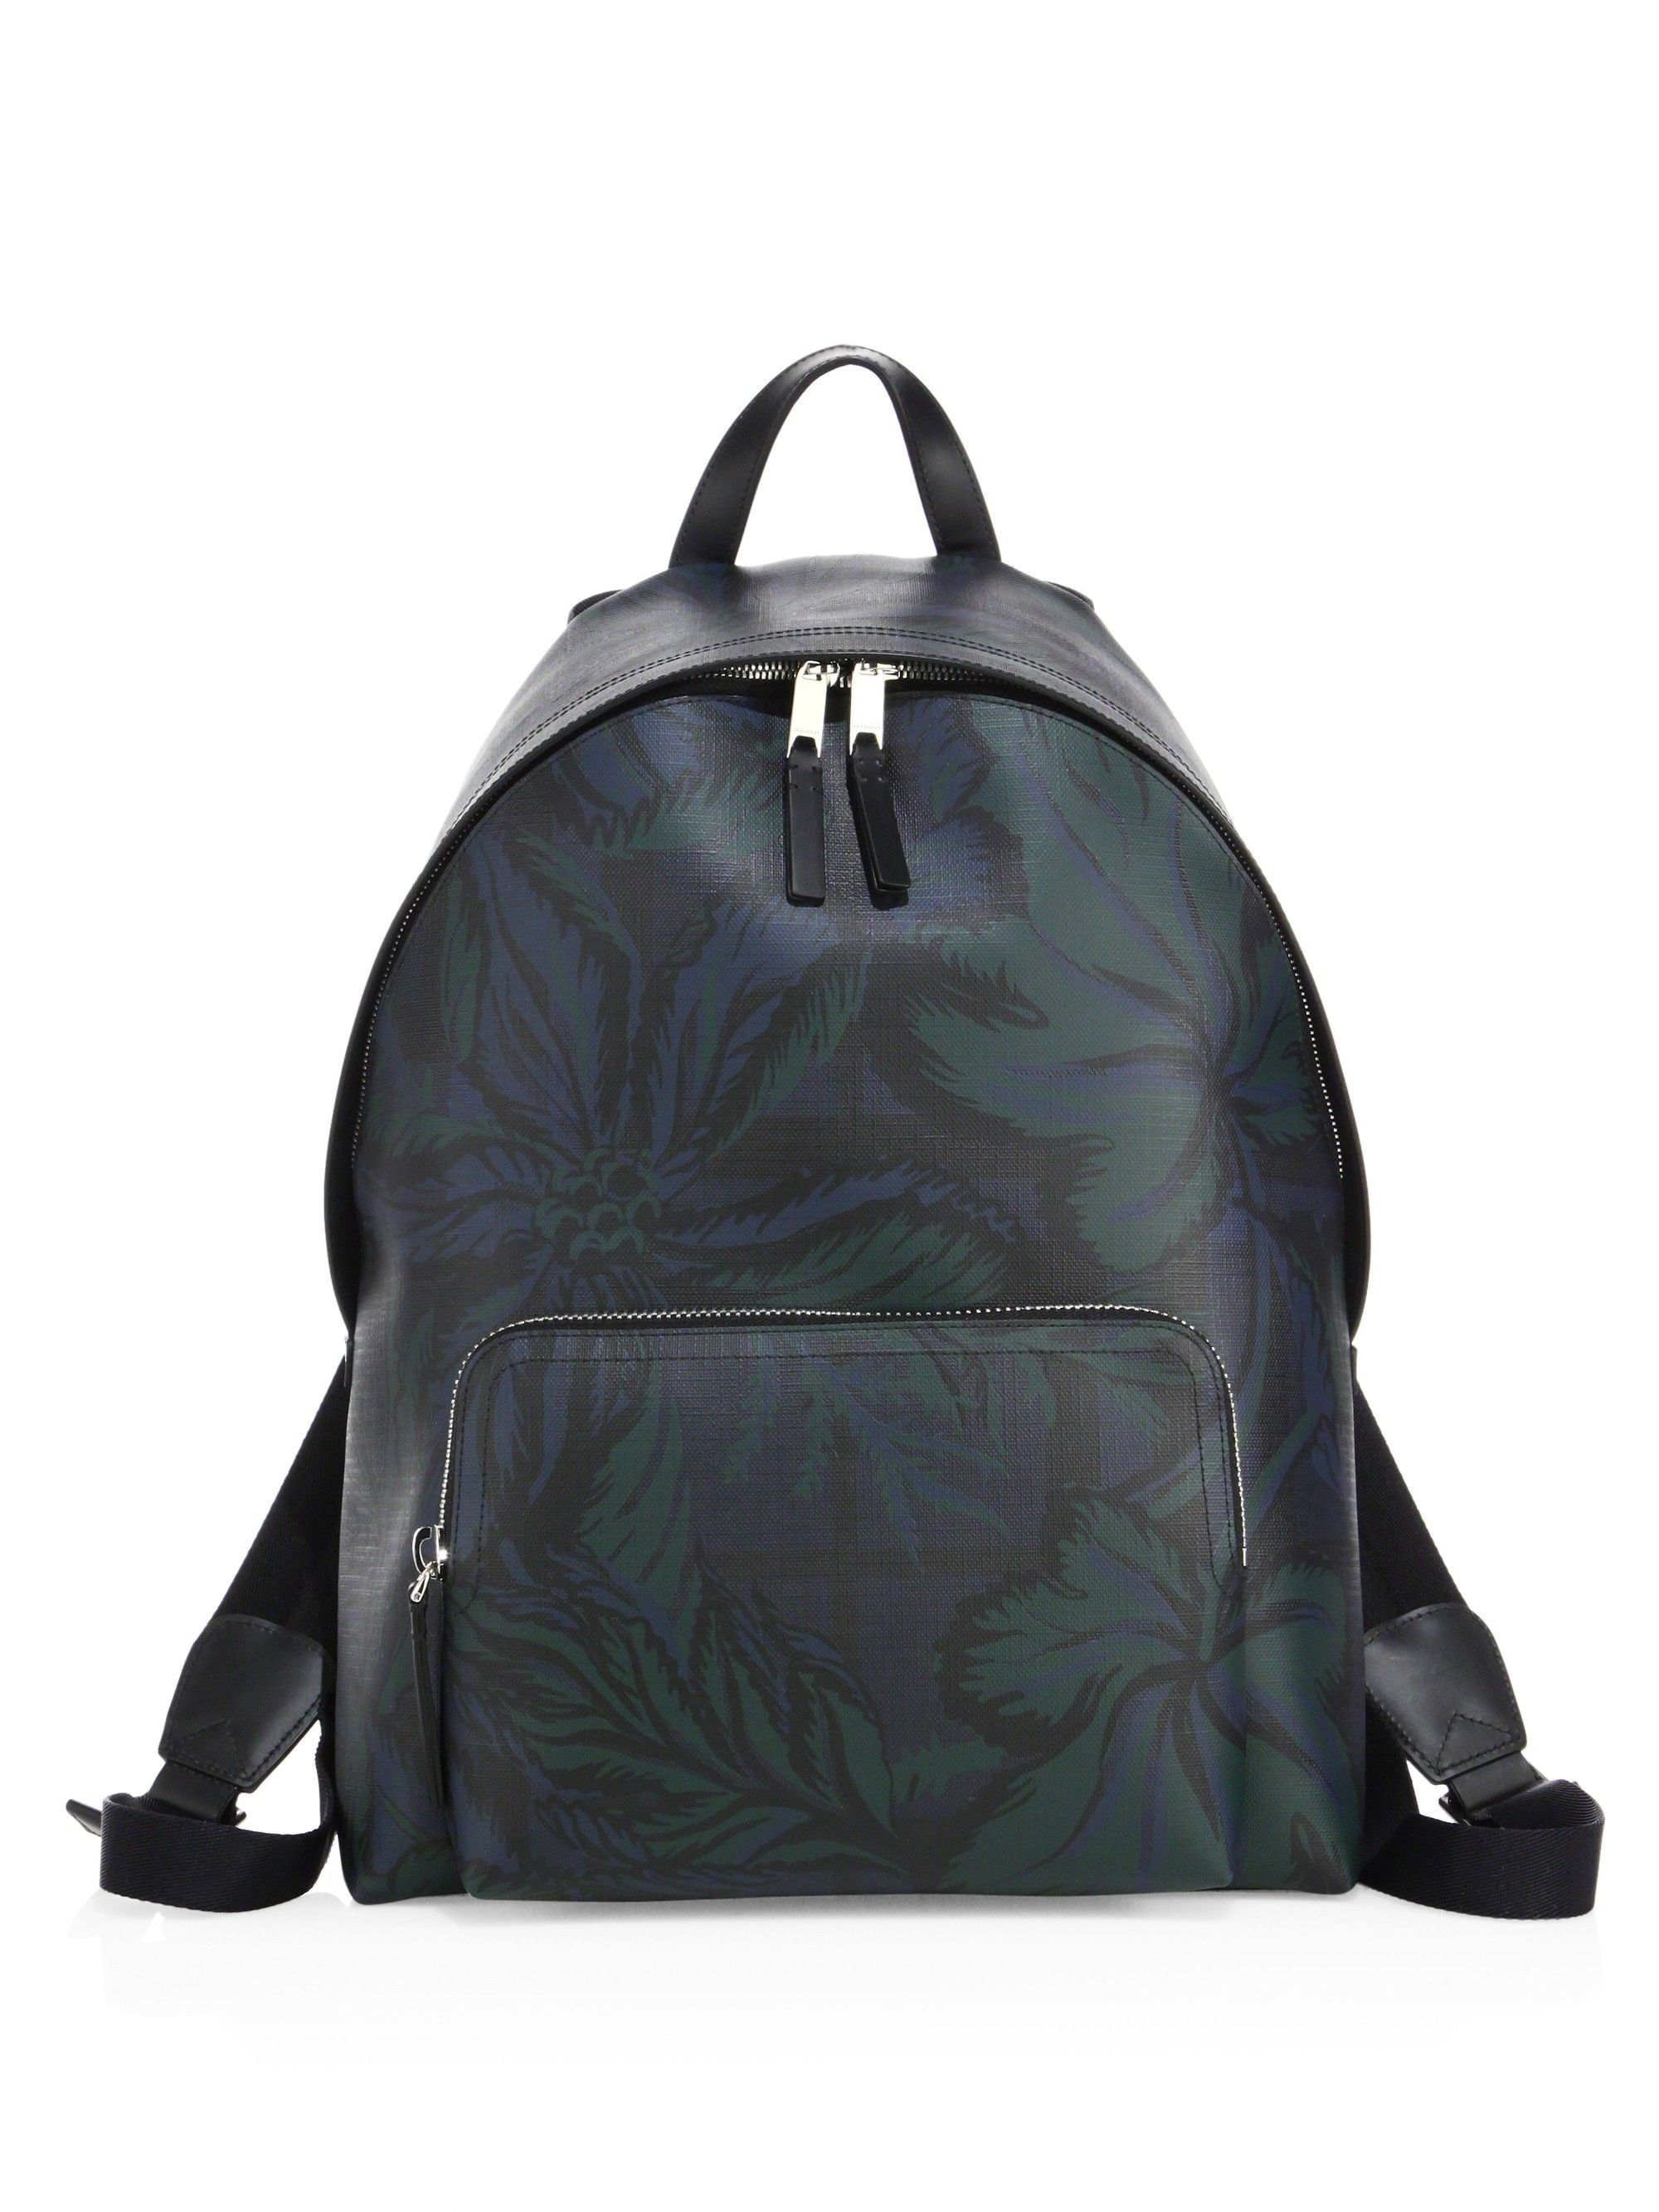 51d10288025d BURBERRY Abbeydale Floral Printed Backpack.  burberry  bags  leather  pvc   backpacks